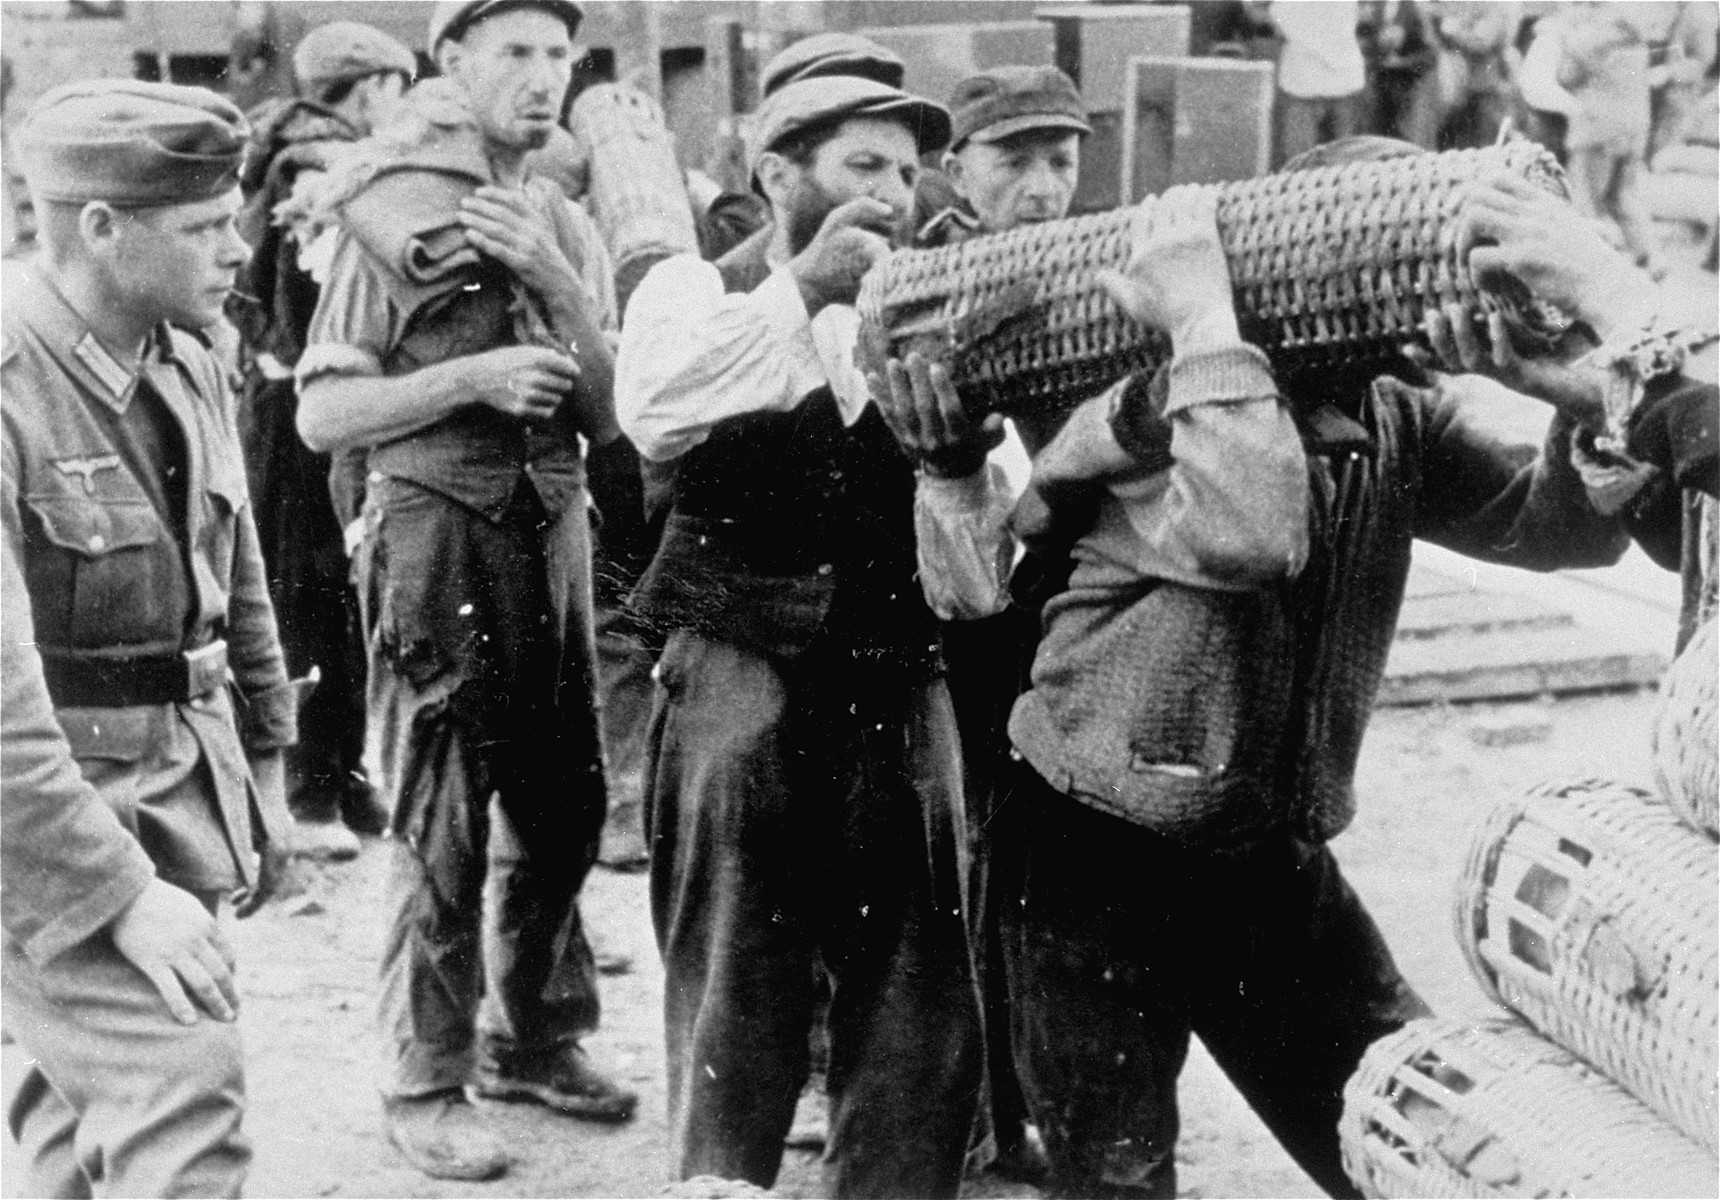 Jews at forced labor carrying artillery munitions.